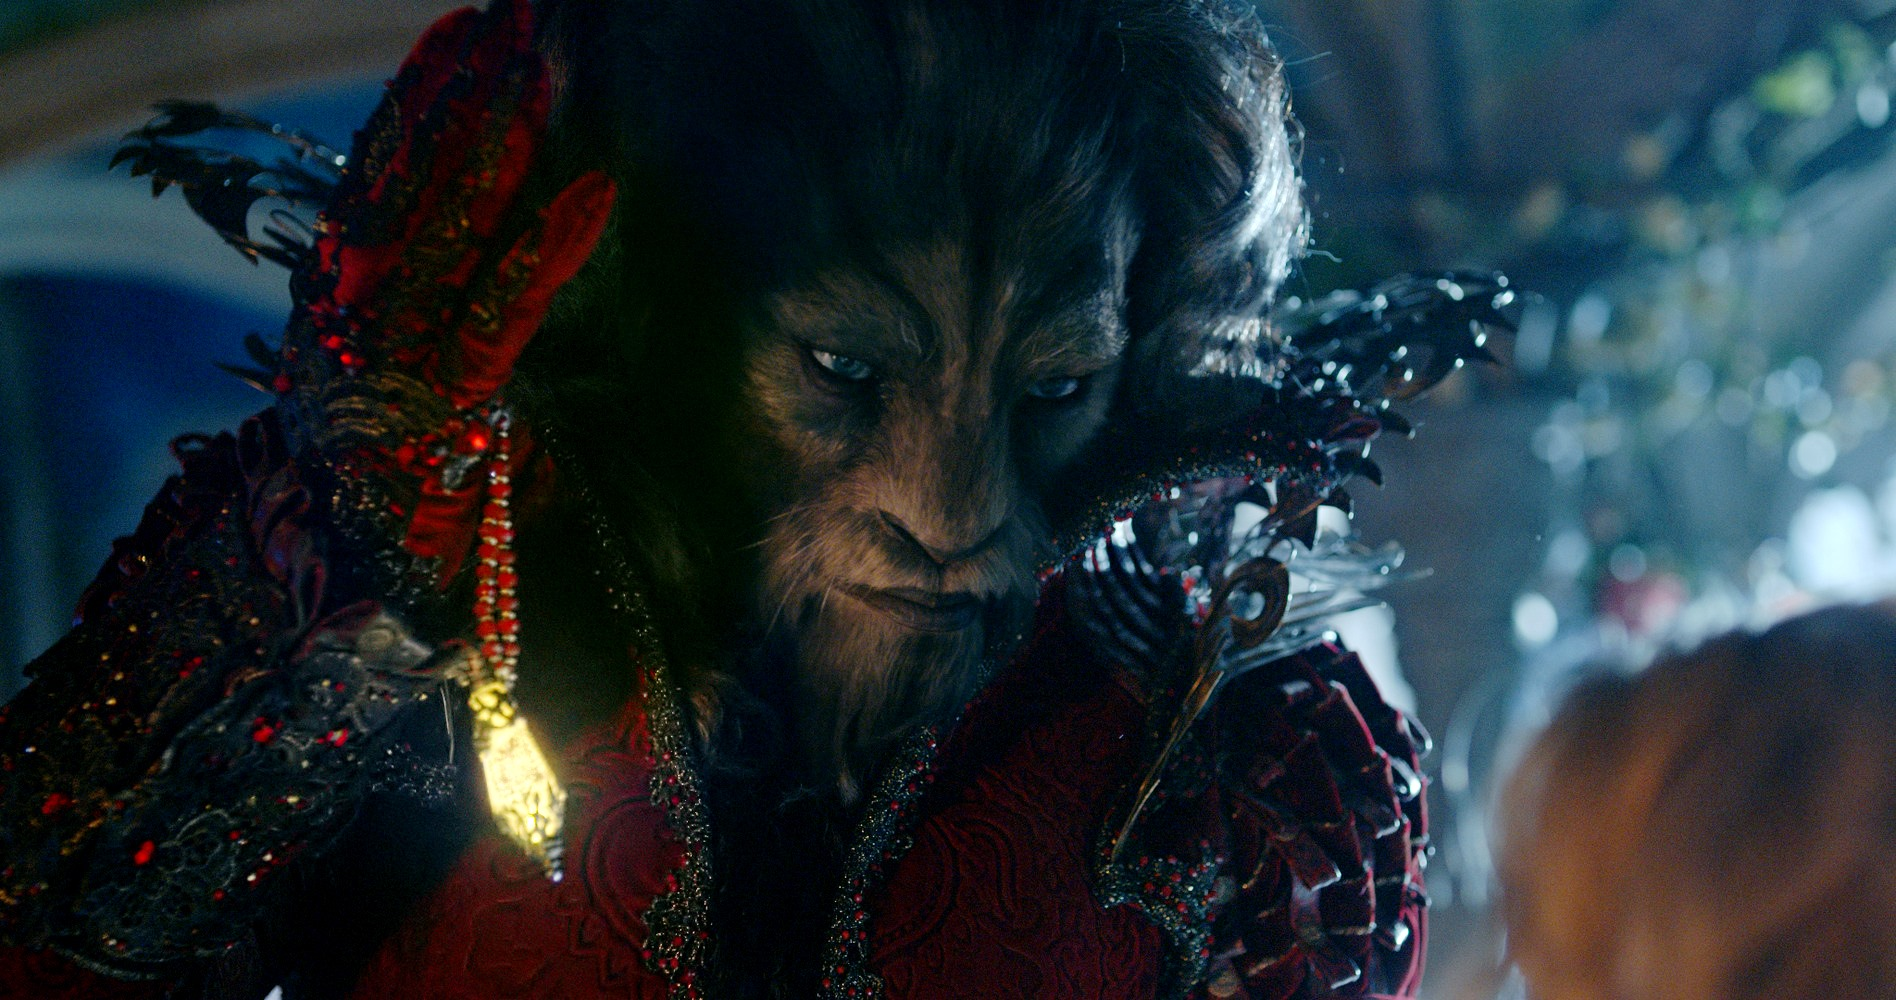 Vincent Cassel as the mocapped Beast in Beauty and the Beast (2014)